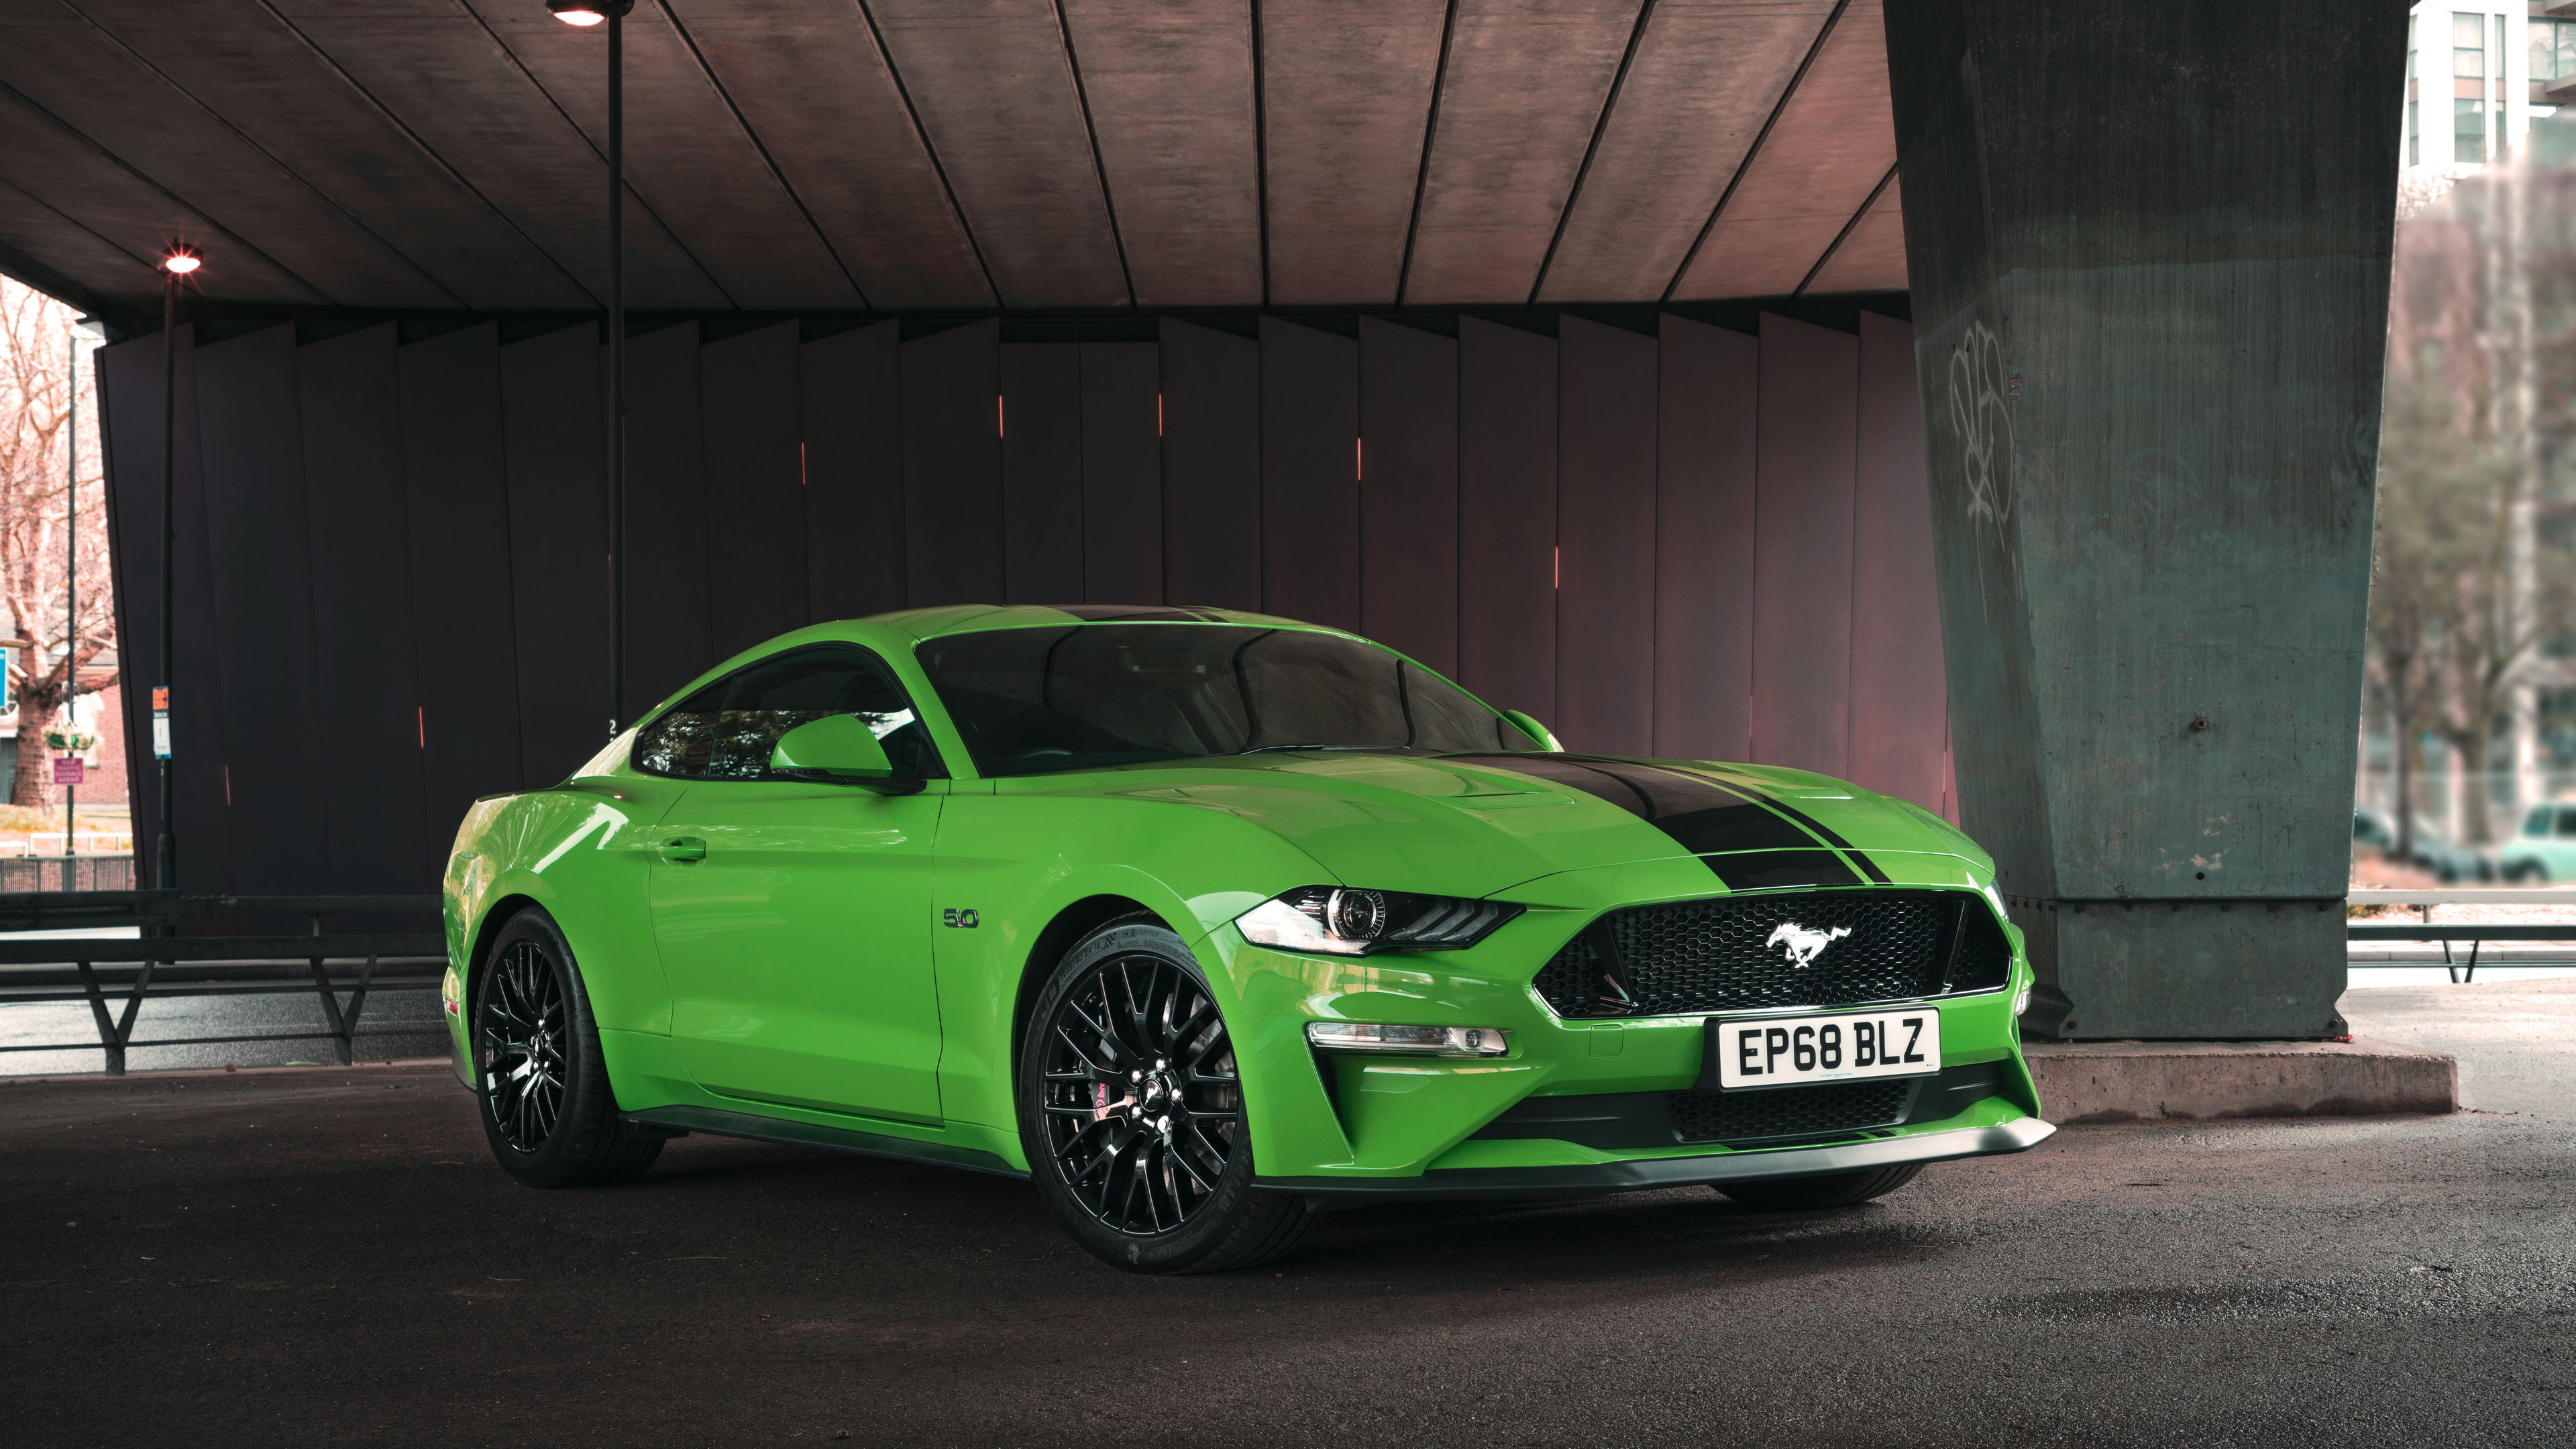 4k Green Ford Mustang GT Fastback 2019